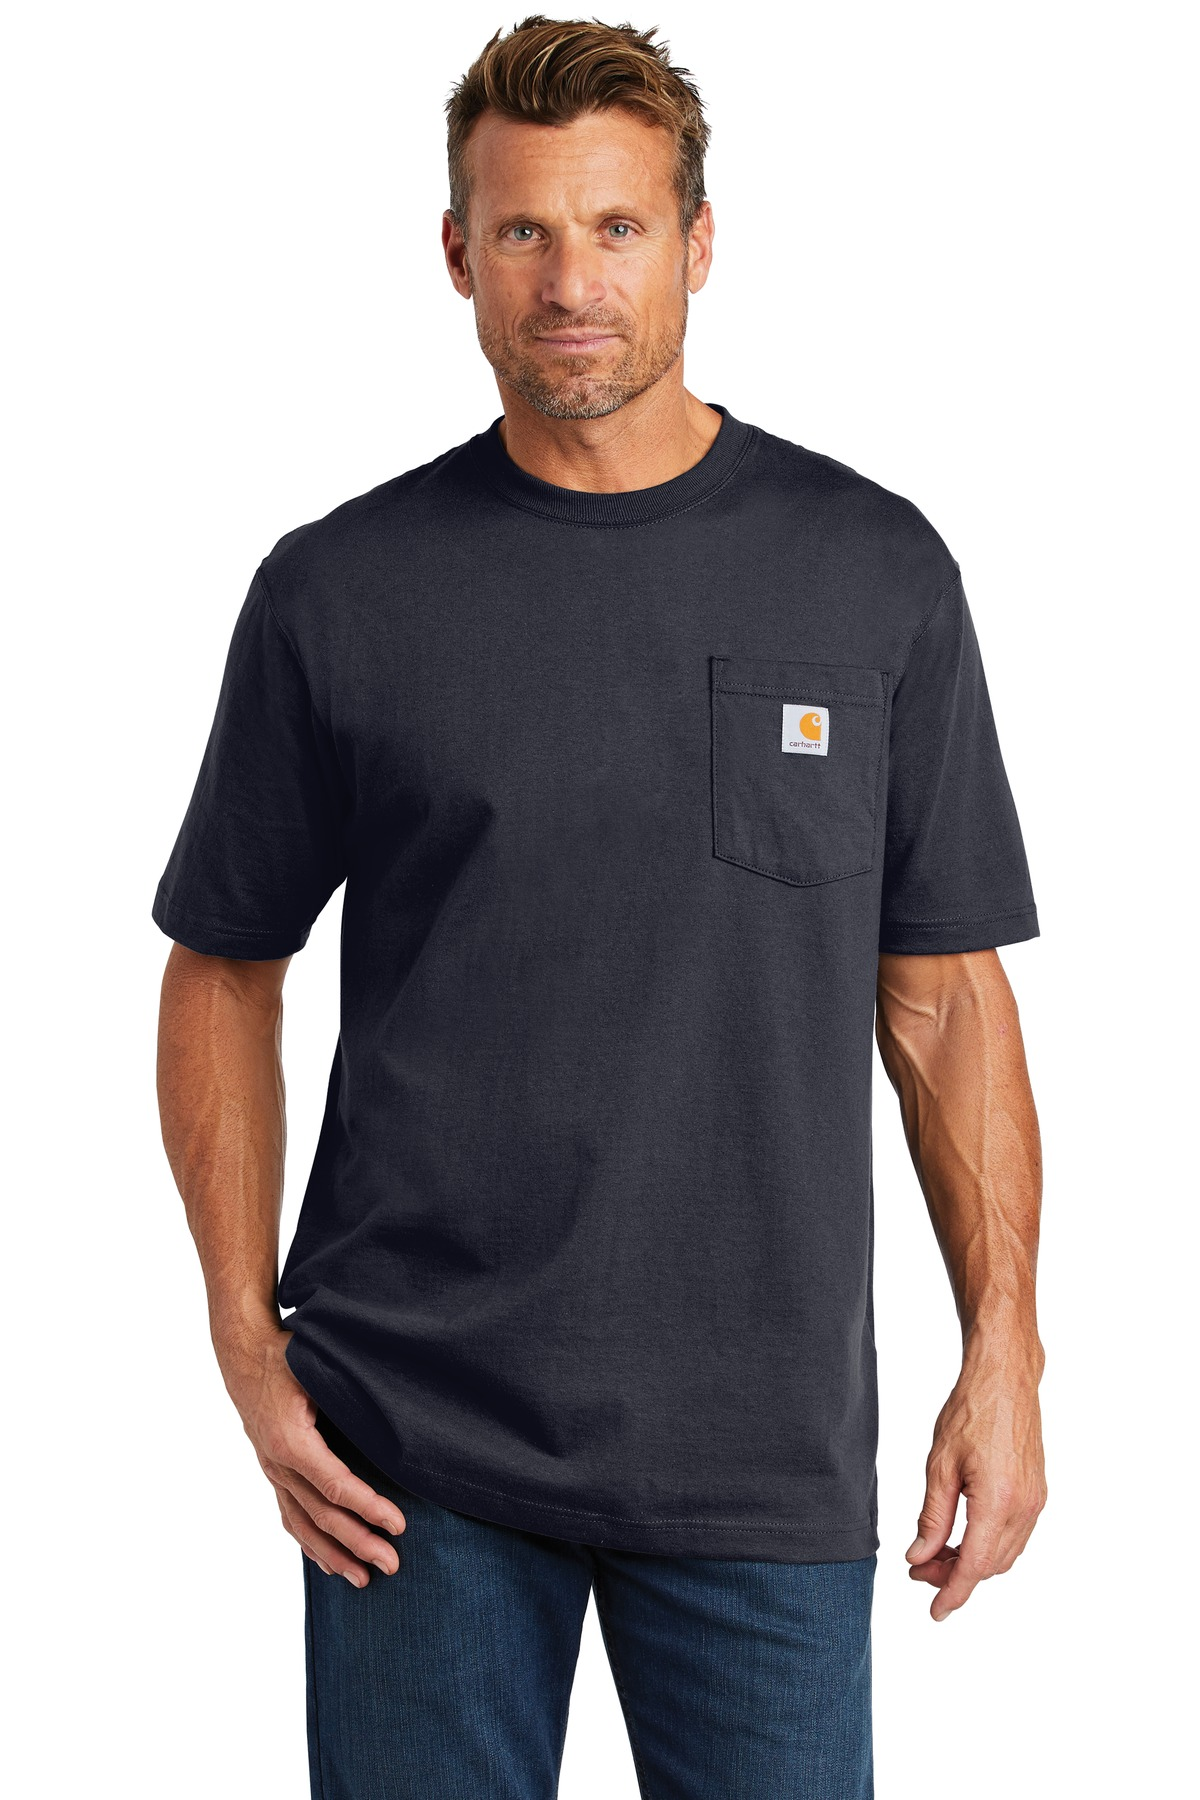 Carhartt  ®  Tall Workwear Pocket Short Sleeve T-Shirt. CTTK87 - Navy